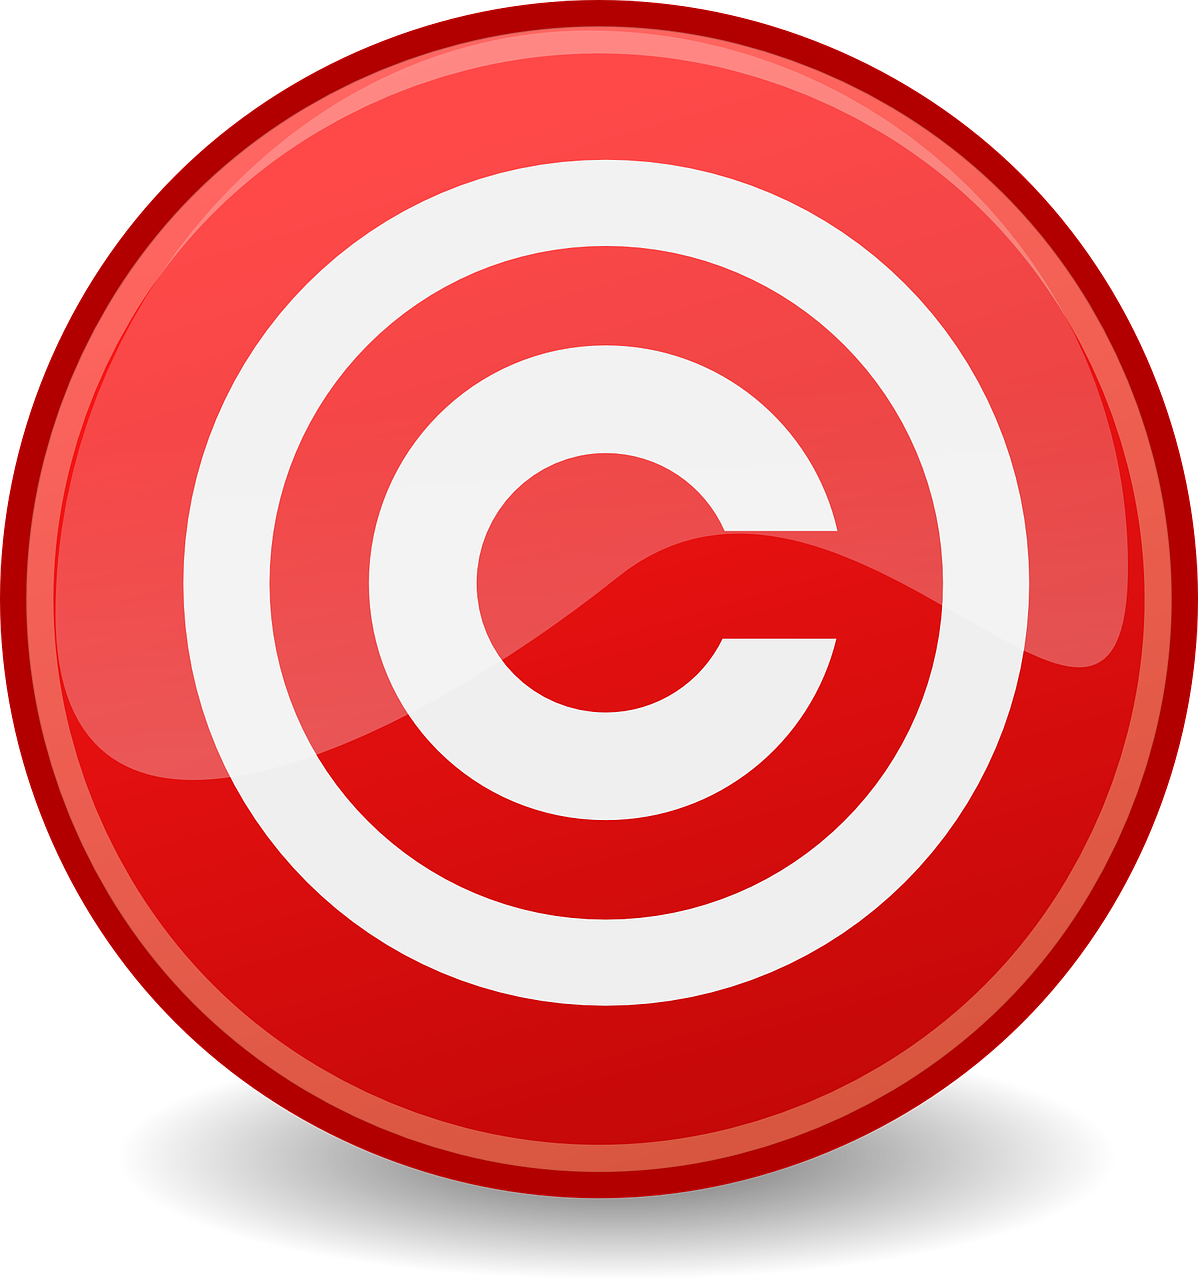 Finding and using media without infringing on copyright